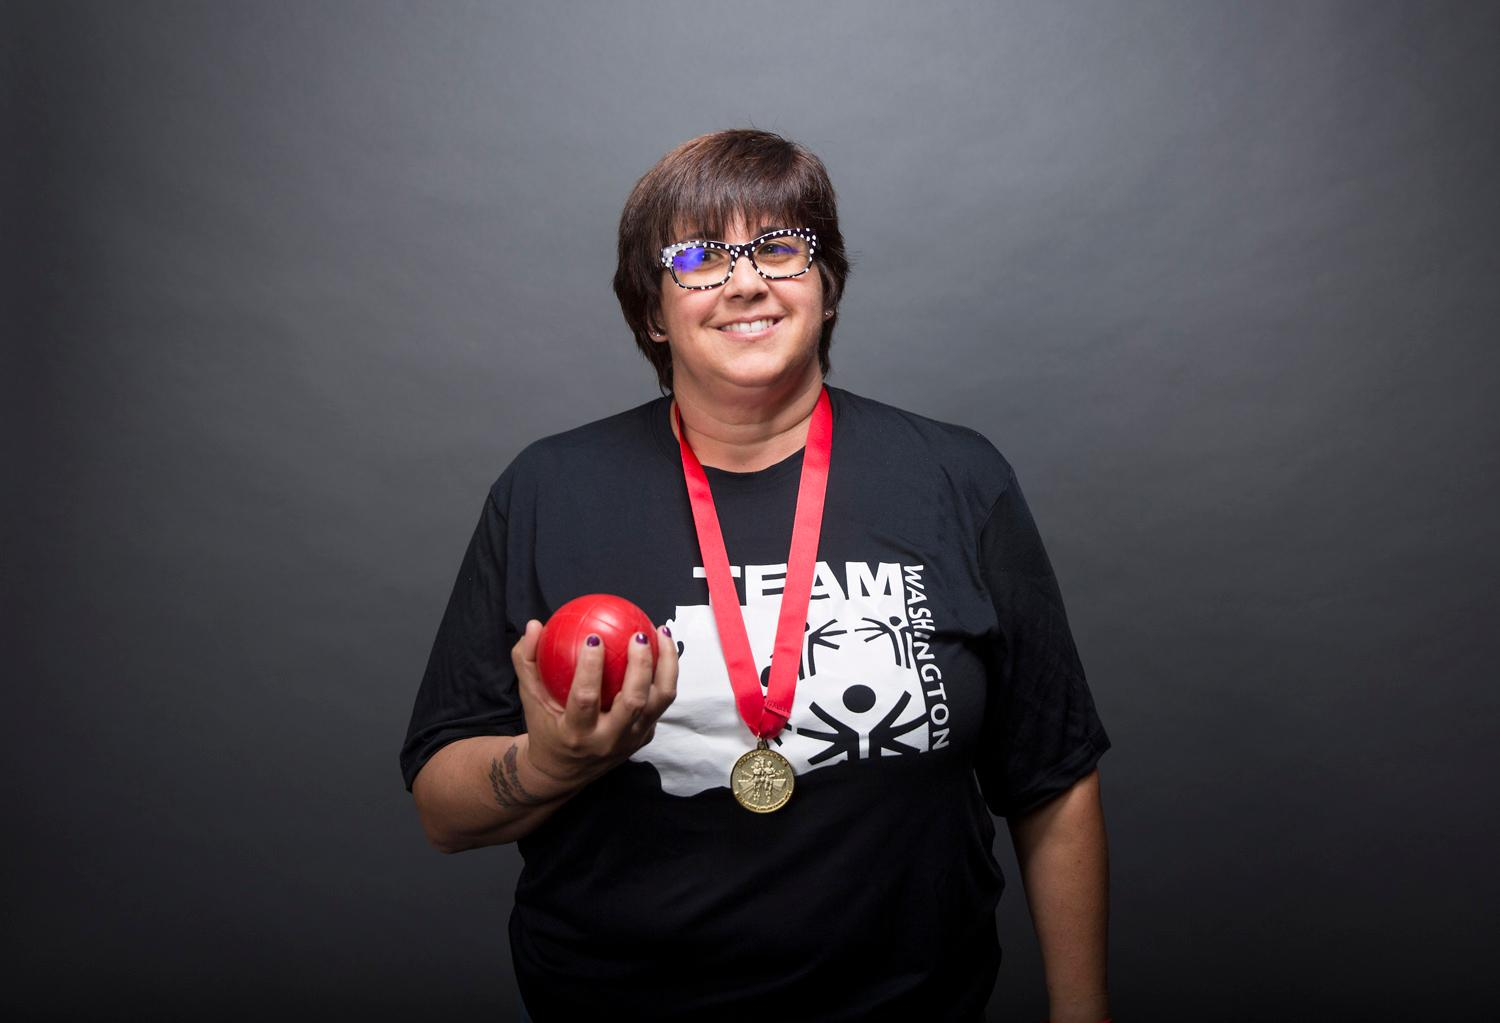 Introducing Michelle Anderson! Michelle will be competing in bocce. The Special Olympics USA will take place in Seattle from July 1-6, with a grand opening ceremony and Parade of Athletes and the lighting of the Special Olympics Flame of Hope. (Sy Bean / Seattle Refined)